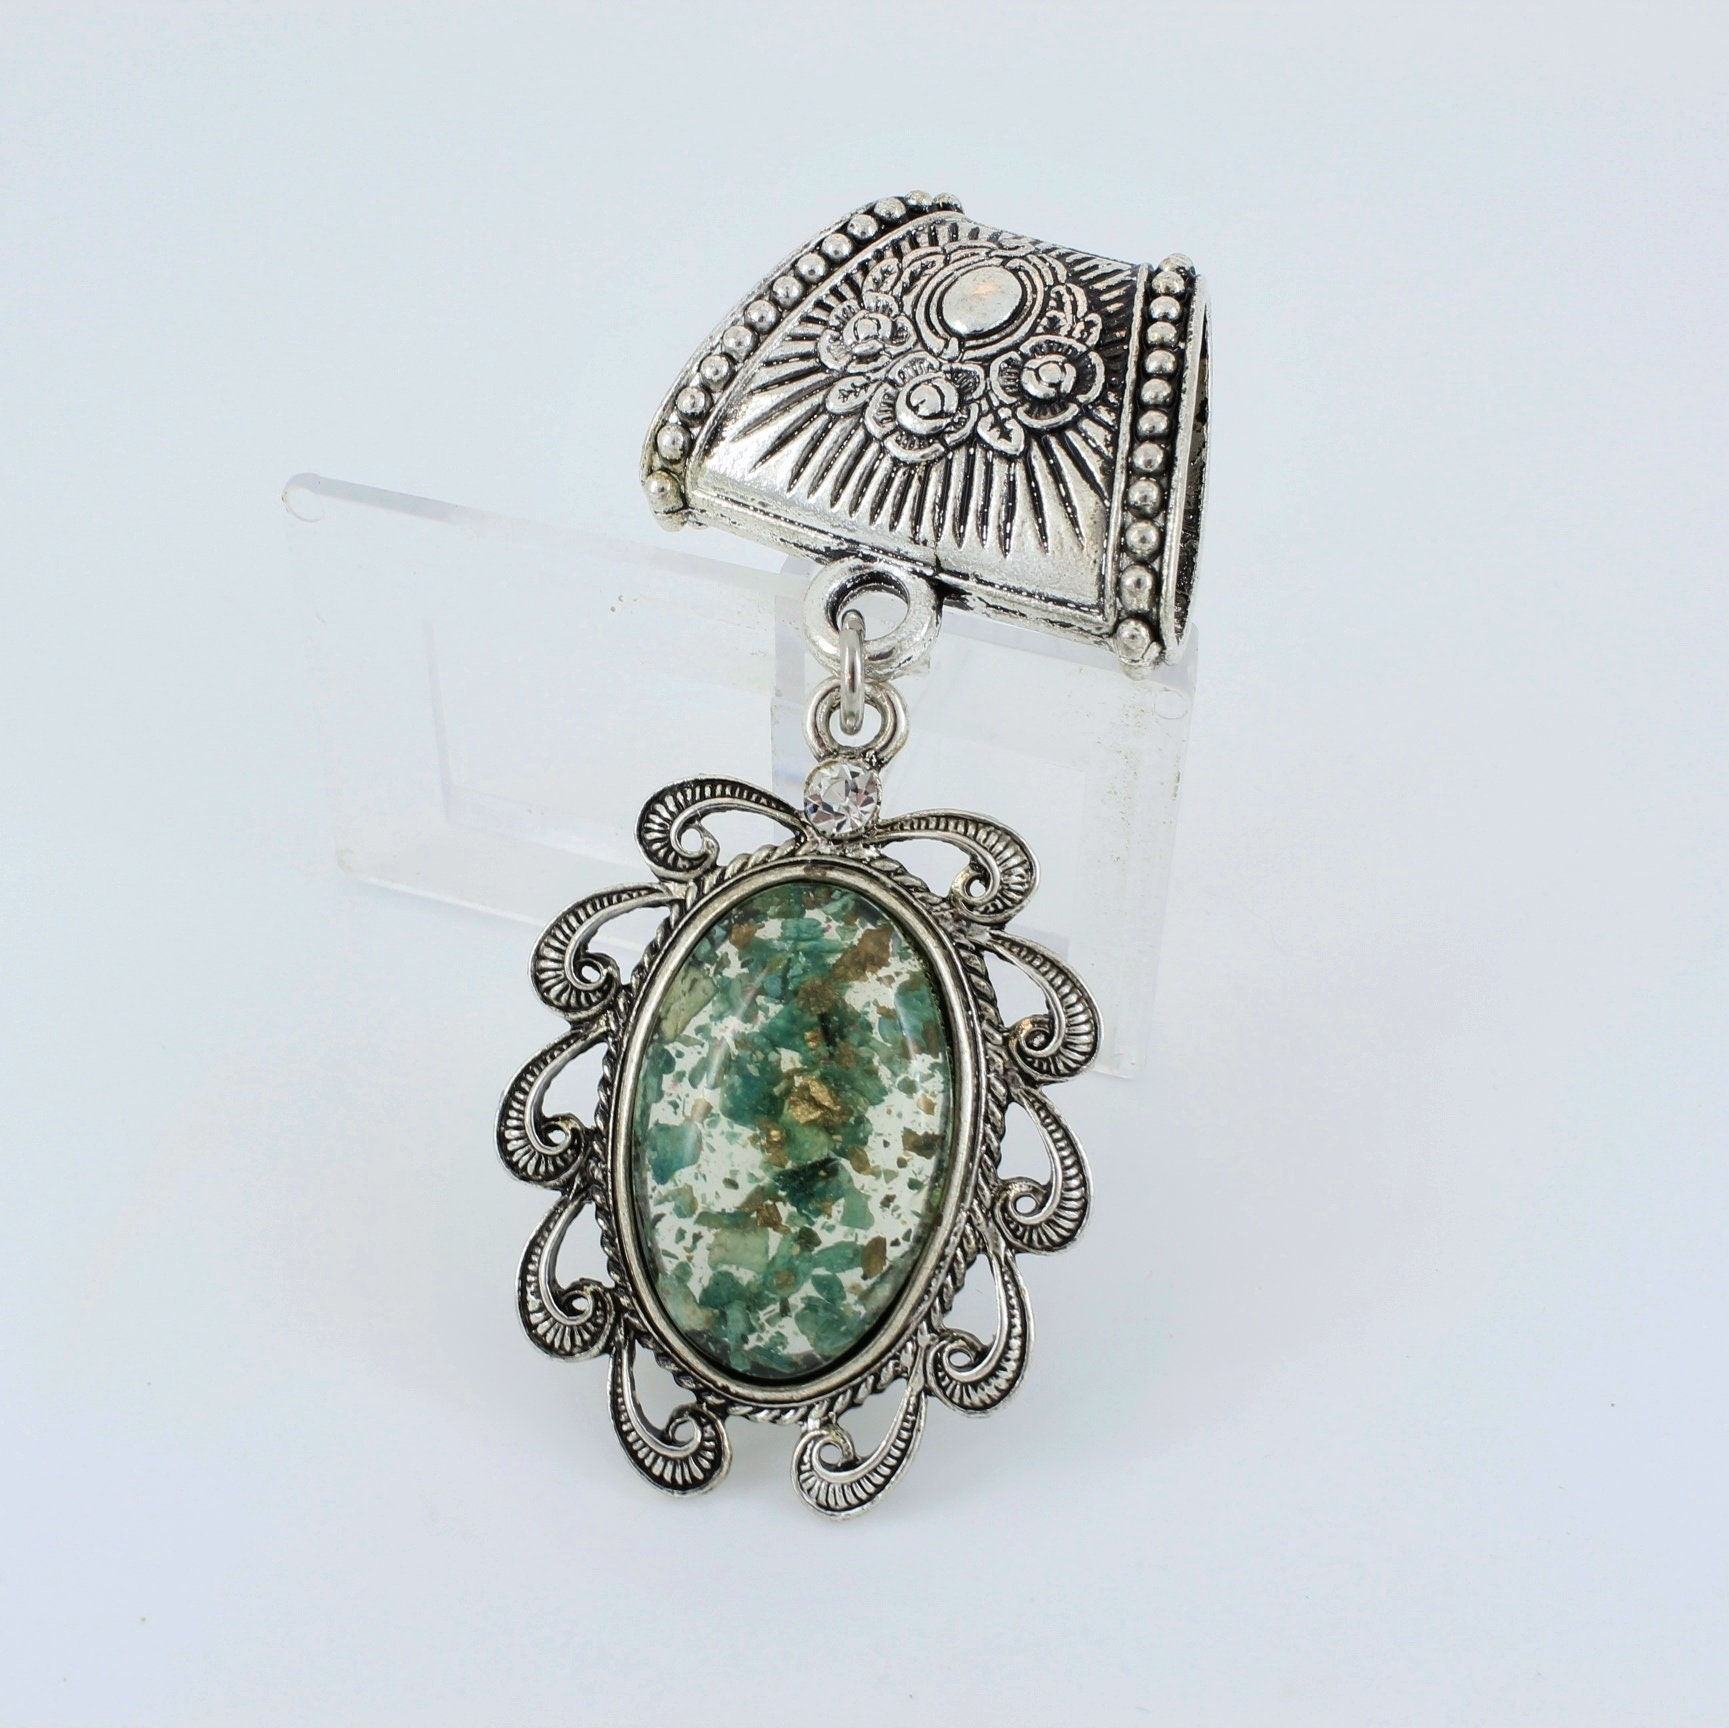 Green,Scarf,Pendant,~,Accessory~,Charm,Slide,Accessories,scarf_charm,scarf_accessory,scarf_pendant,scarf_jewelry,scarf_slide,scarf_bling,Green_scarf_slide,mossy_green_jewelry,resin_jewelry,Silver alloy slide,Resin set in silver,rhinestone,glue